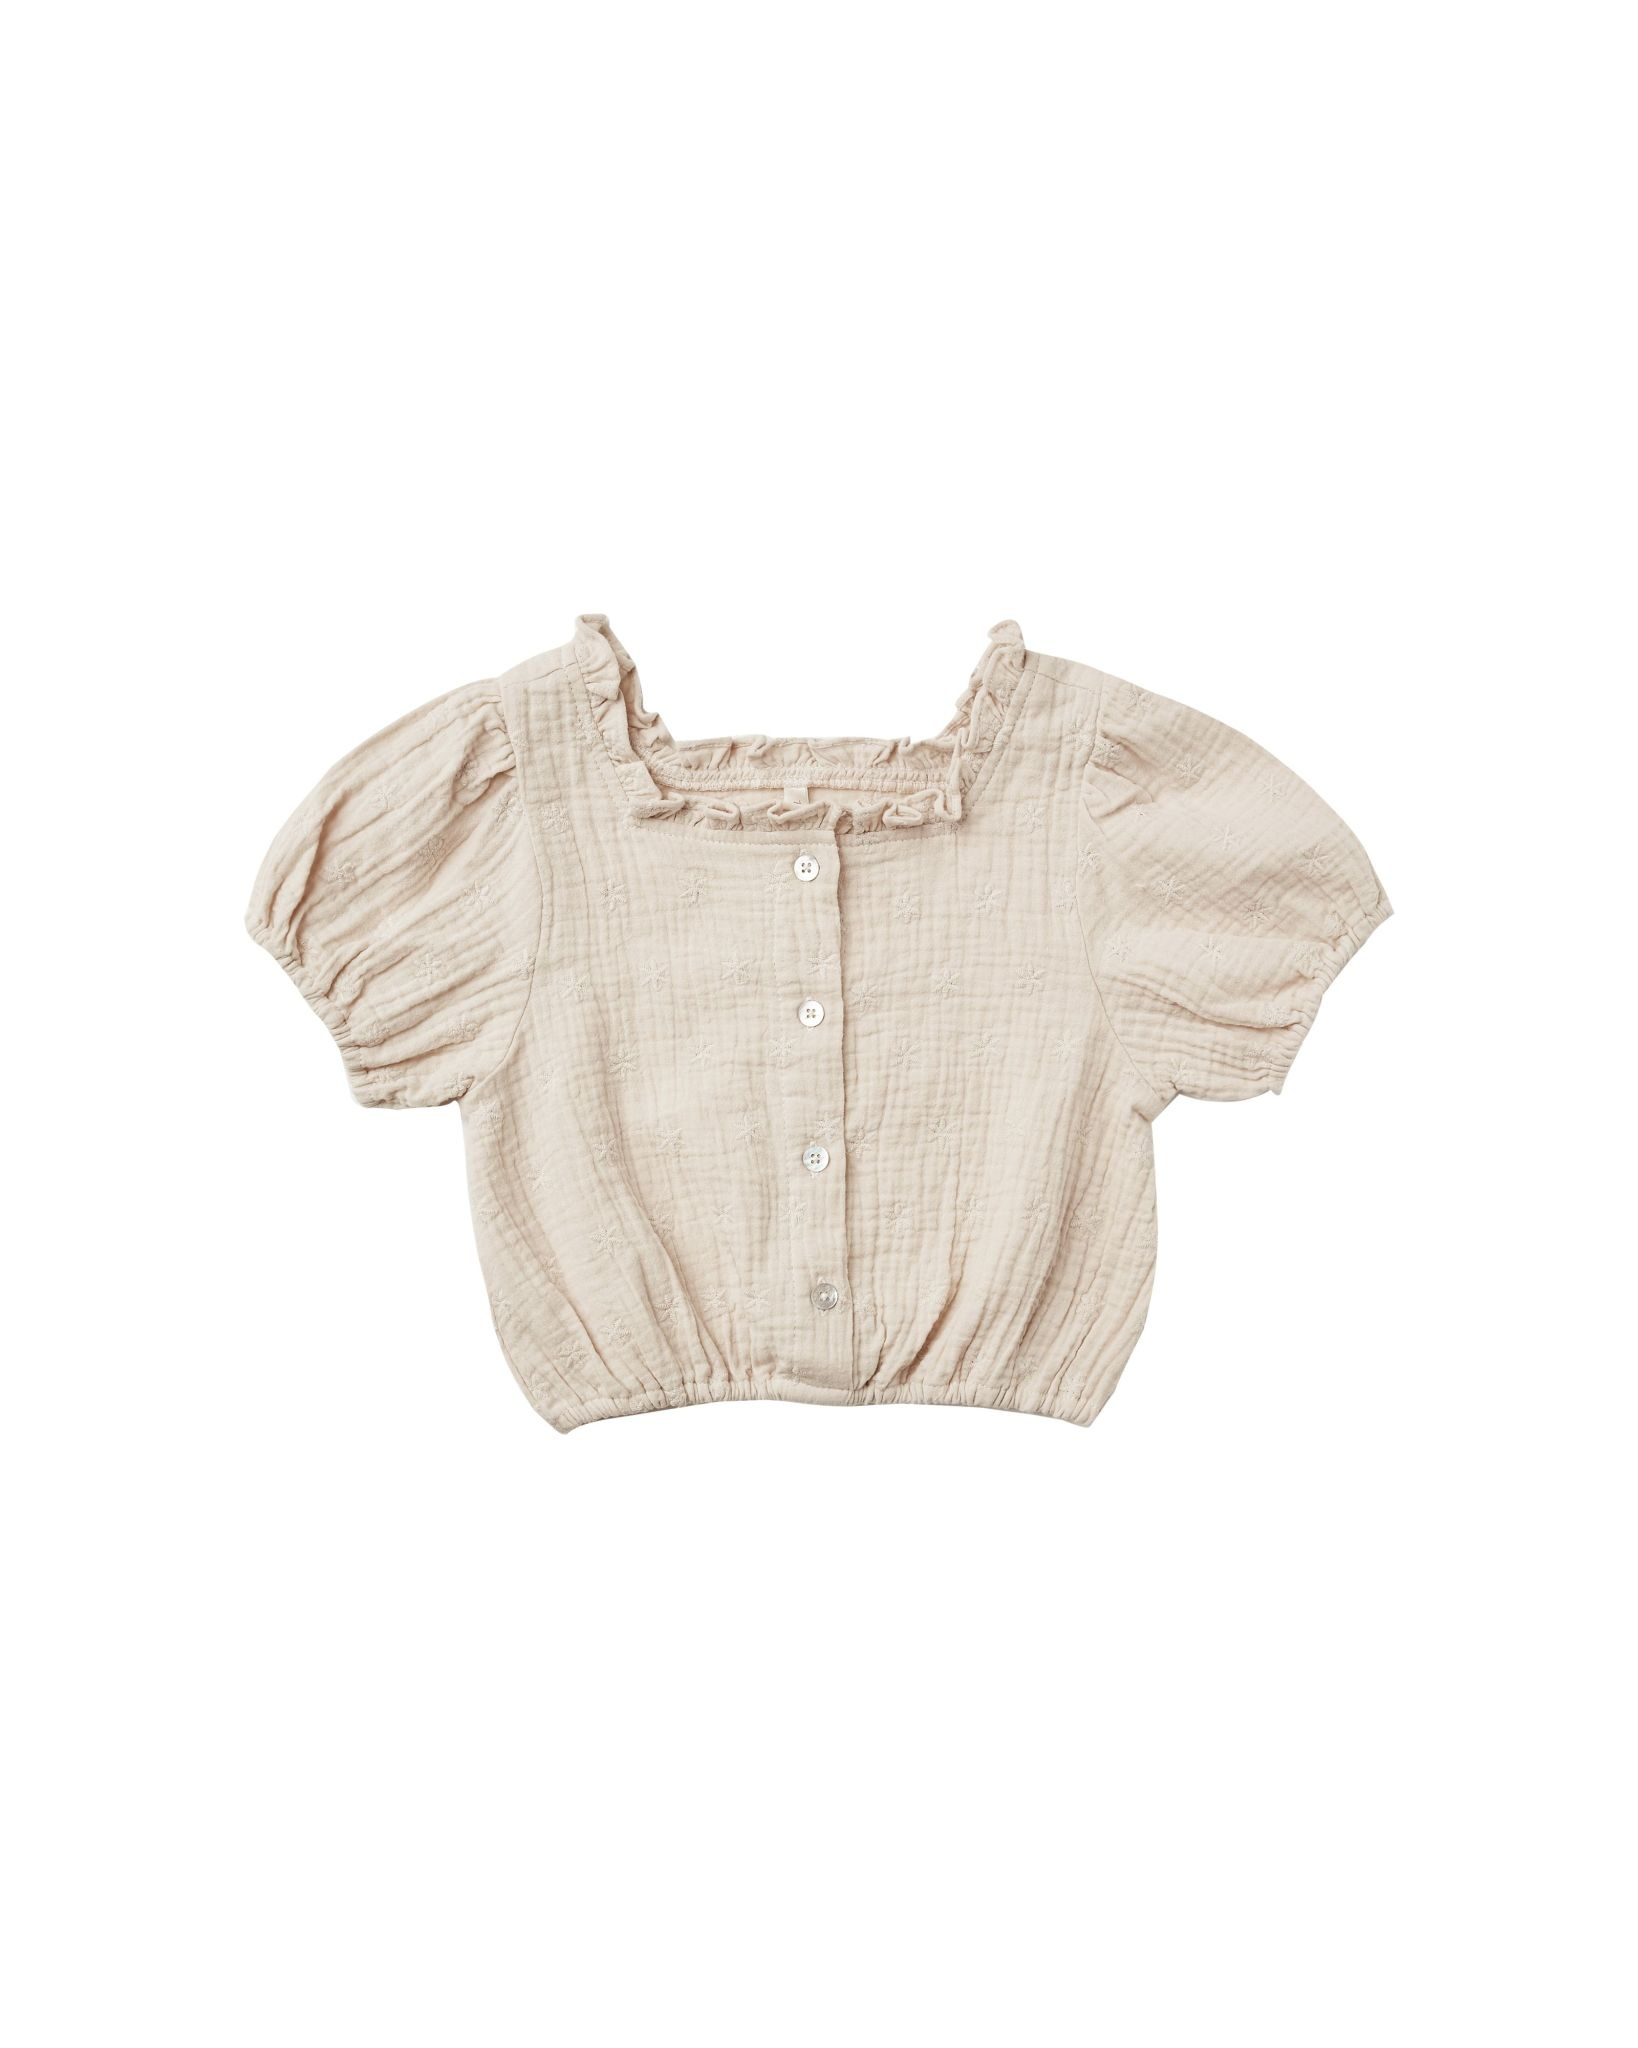 Rylee & Cru Dylan Blouse - Embroidered Daisy